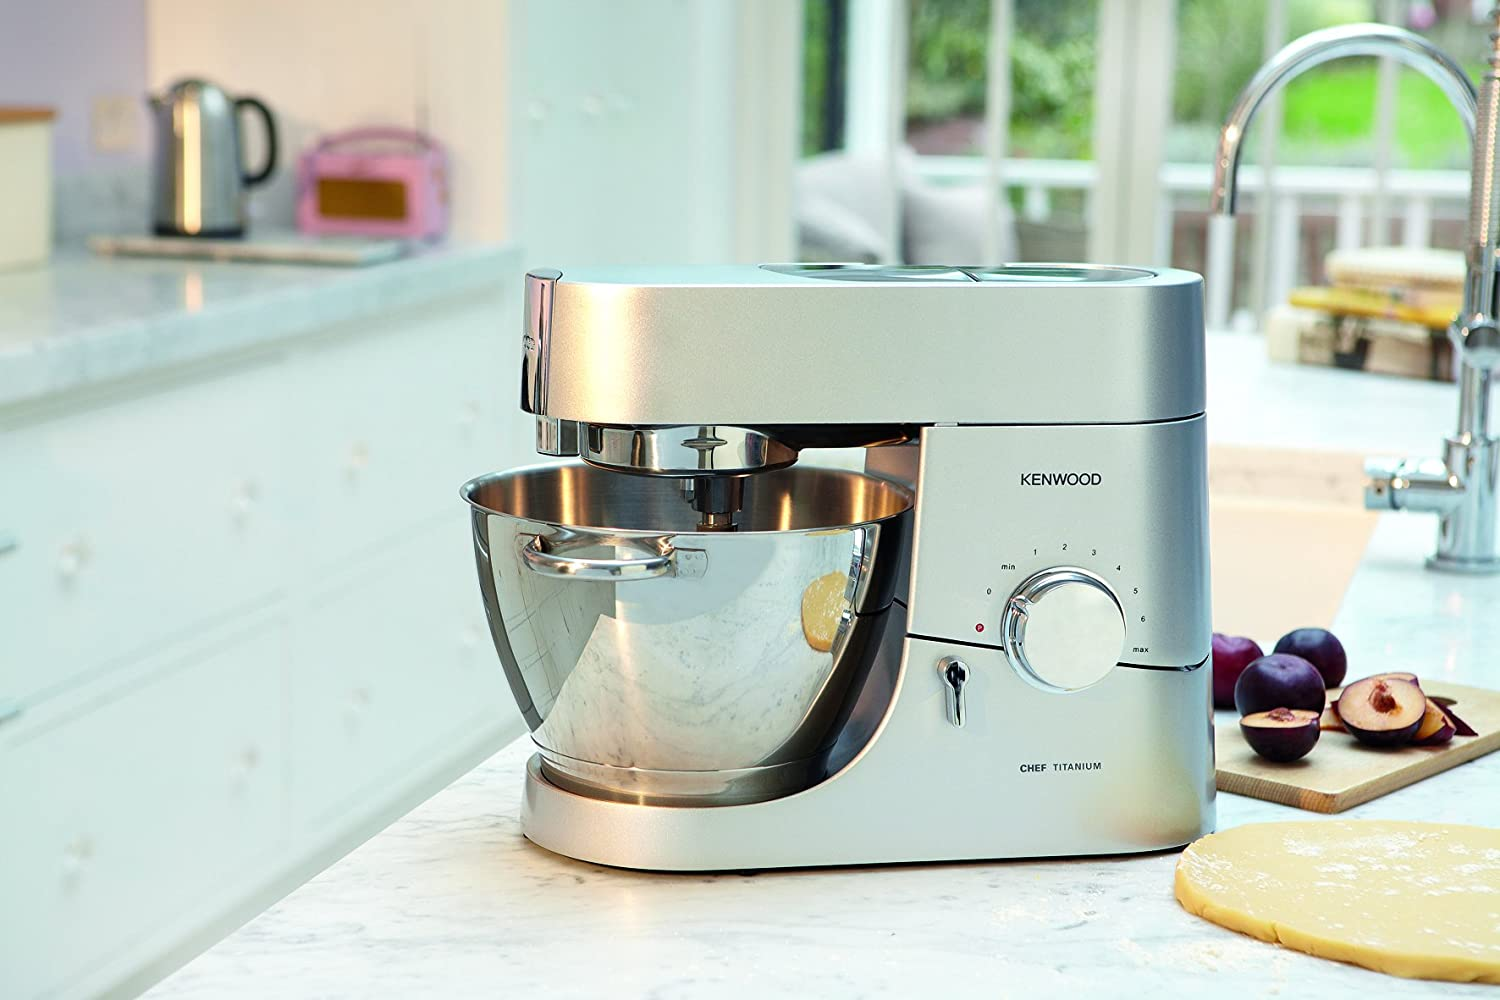 Amazon.com: Kenwood Titanium Chef, Silver, KMC010: Kitchen & Dining